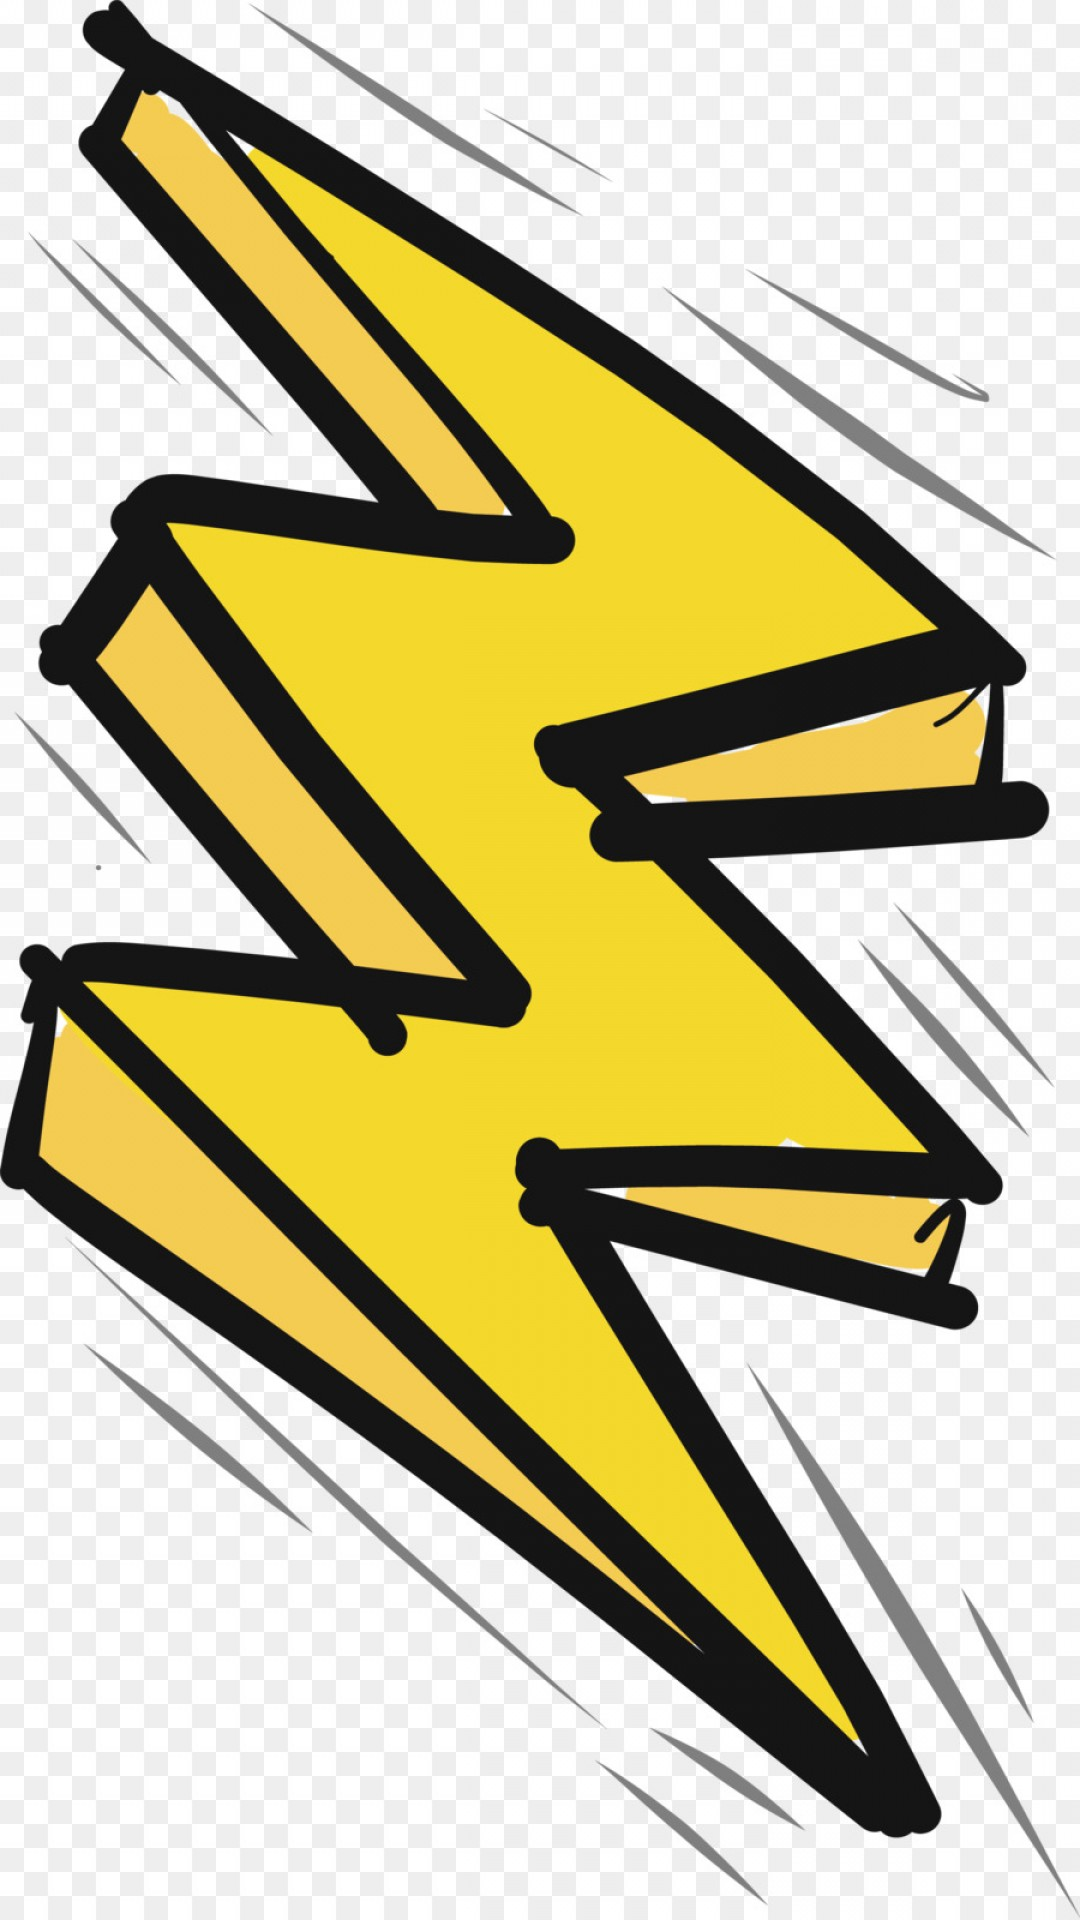 Thunder vector clipart vector download Png Lightning Thunder Euclidean Vector Clip Art Twists ... vector download